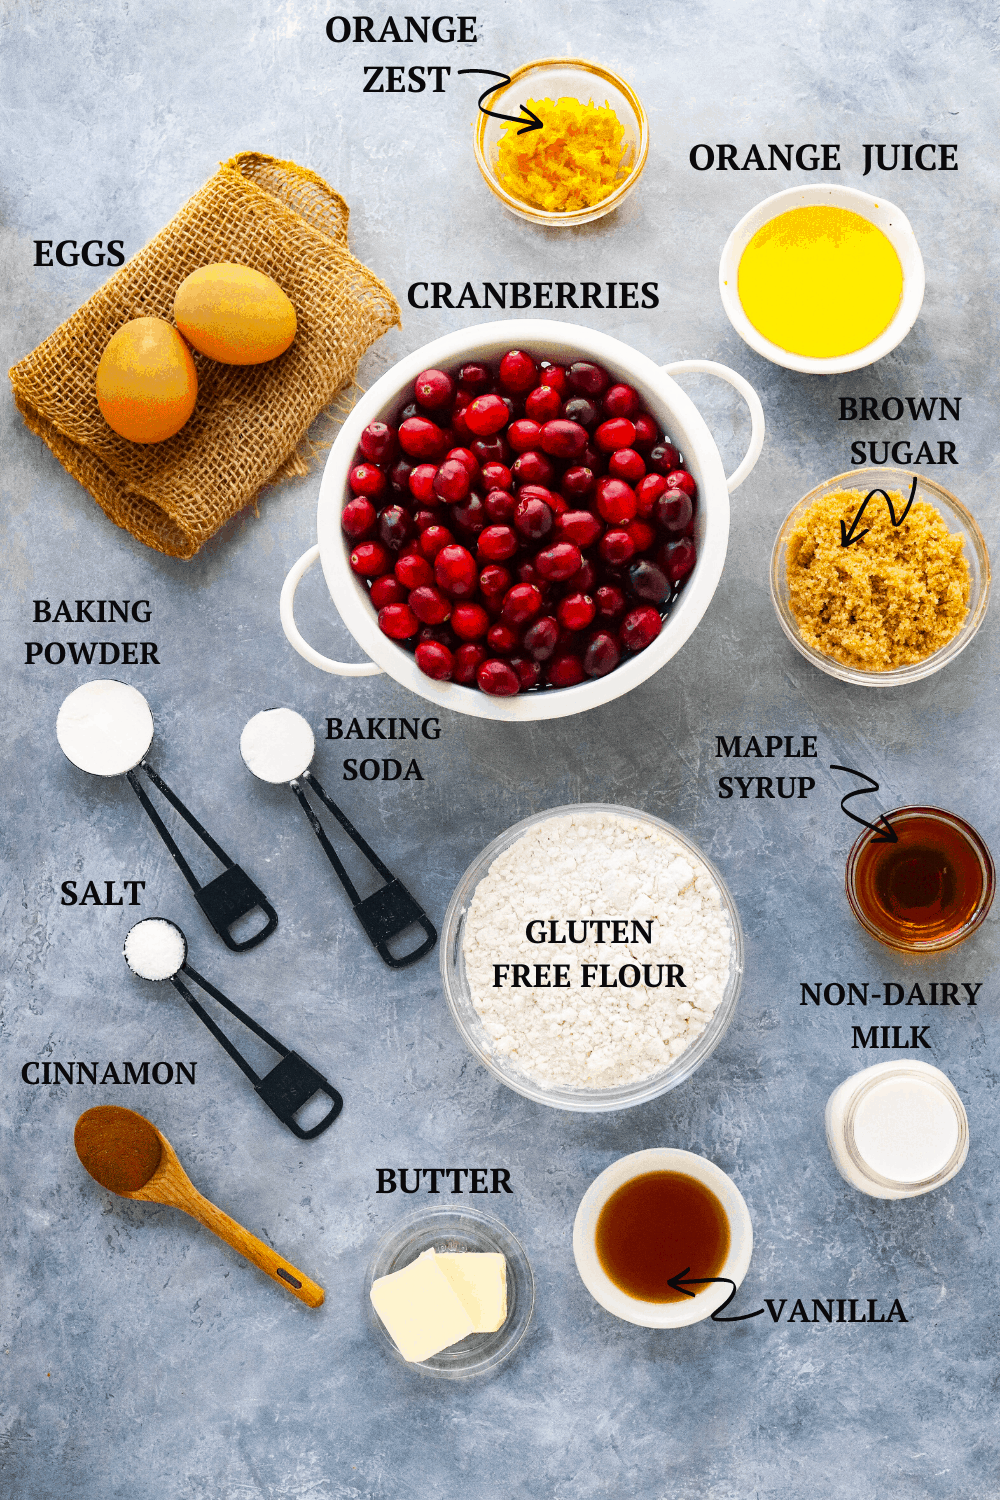 cranberries, eggs, flour, and other baking ingredients in bowls on a gray surface.